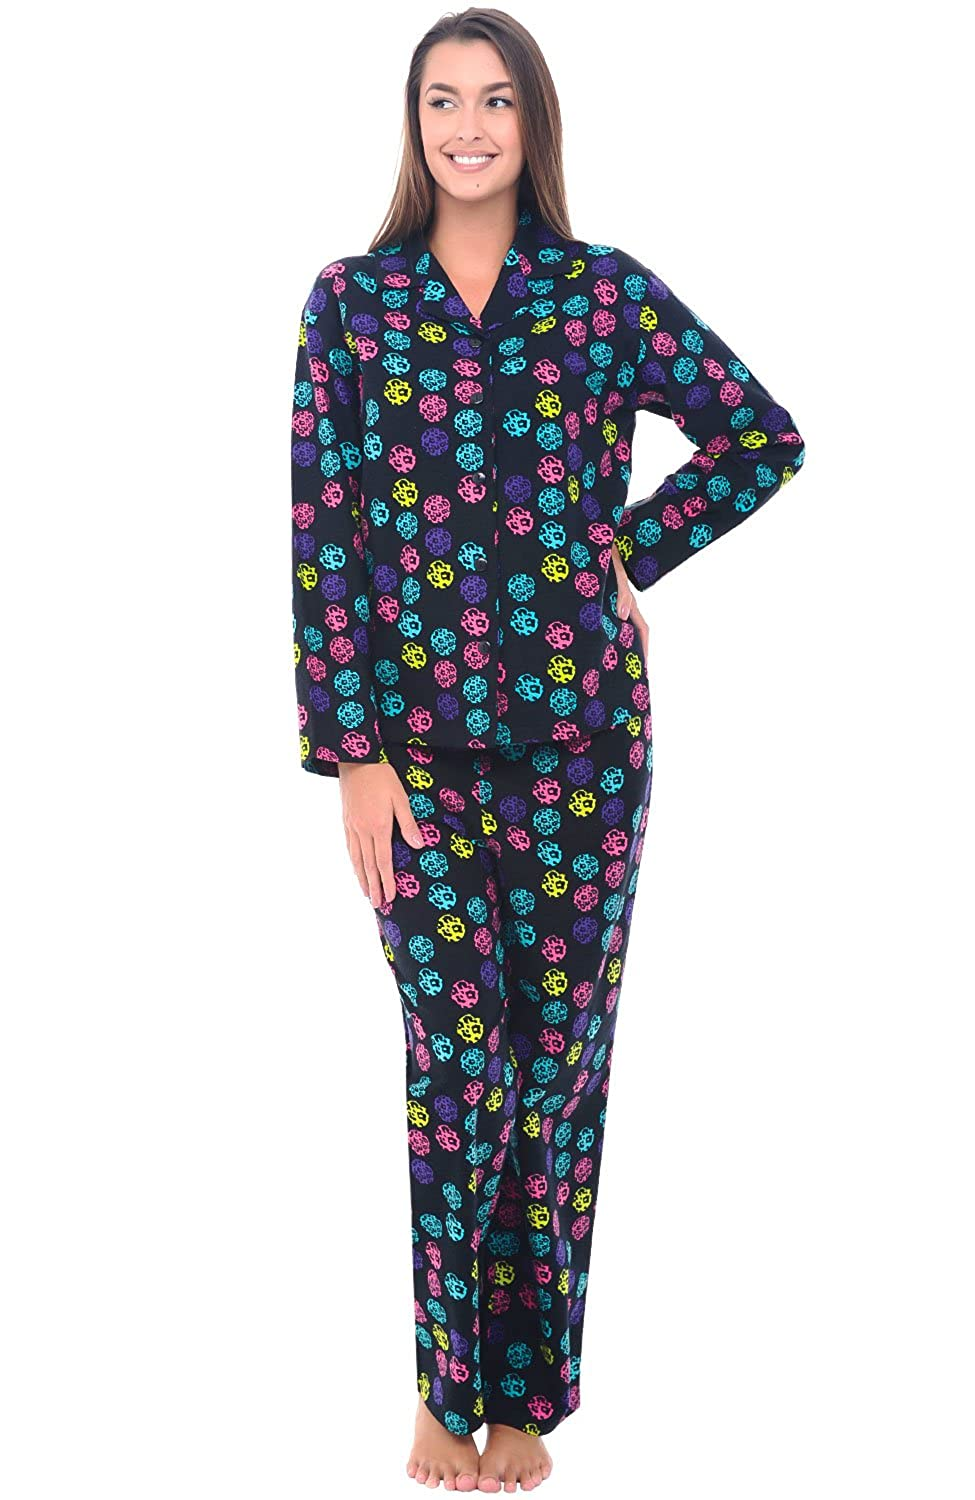 Del Rossa Women's Flannel Pajamas, Long Cotton Pj Set